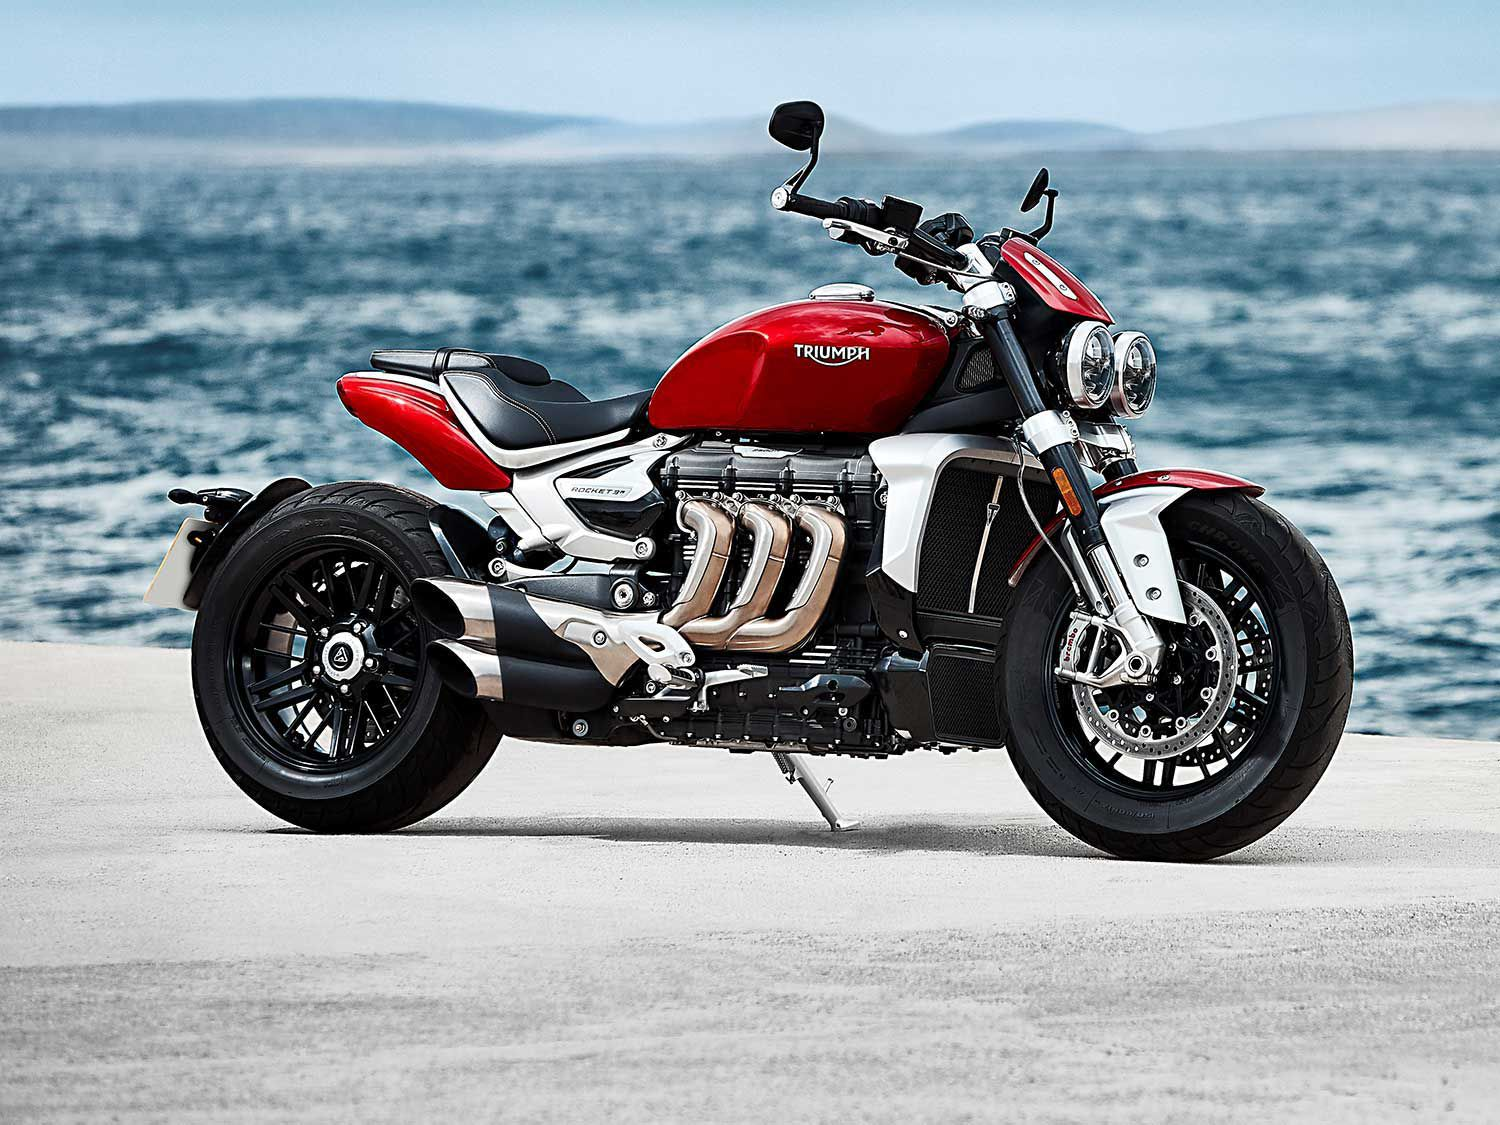 The 2020 Rocket 3 brings a new era to Triumph's Rocket line, a much sportier motorbike than the previous generation. An aluminum frame, single-sided swingarm, Brembo Stylema brakes, and beautiful metal finishes highlight this handsome monster.